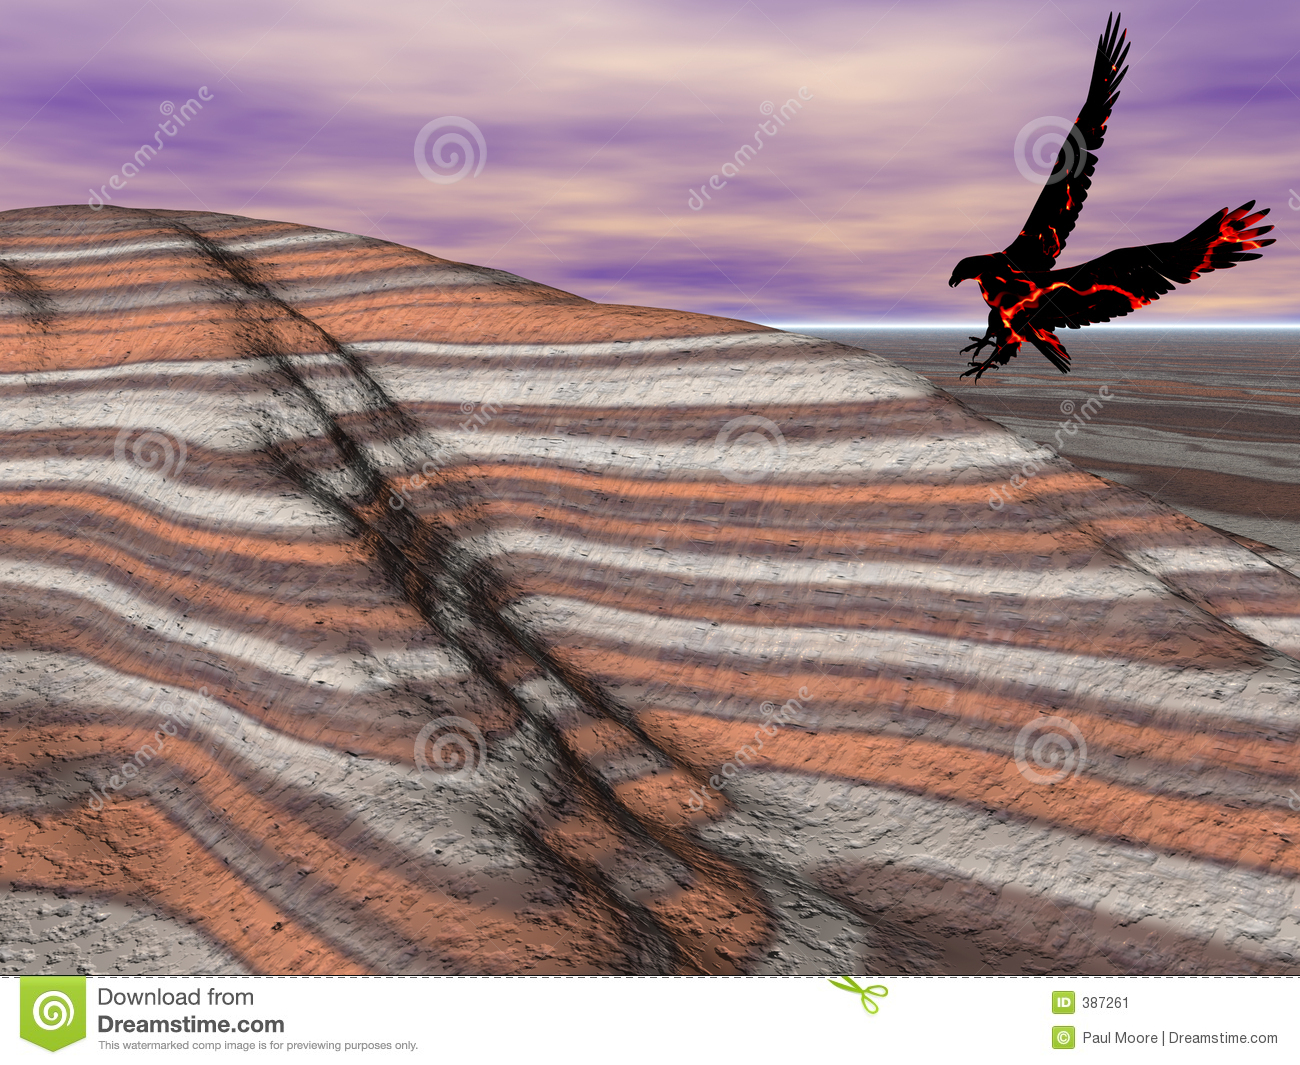 Eagle flying in the painted desert.